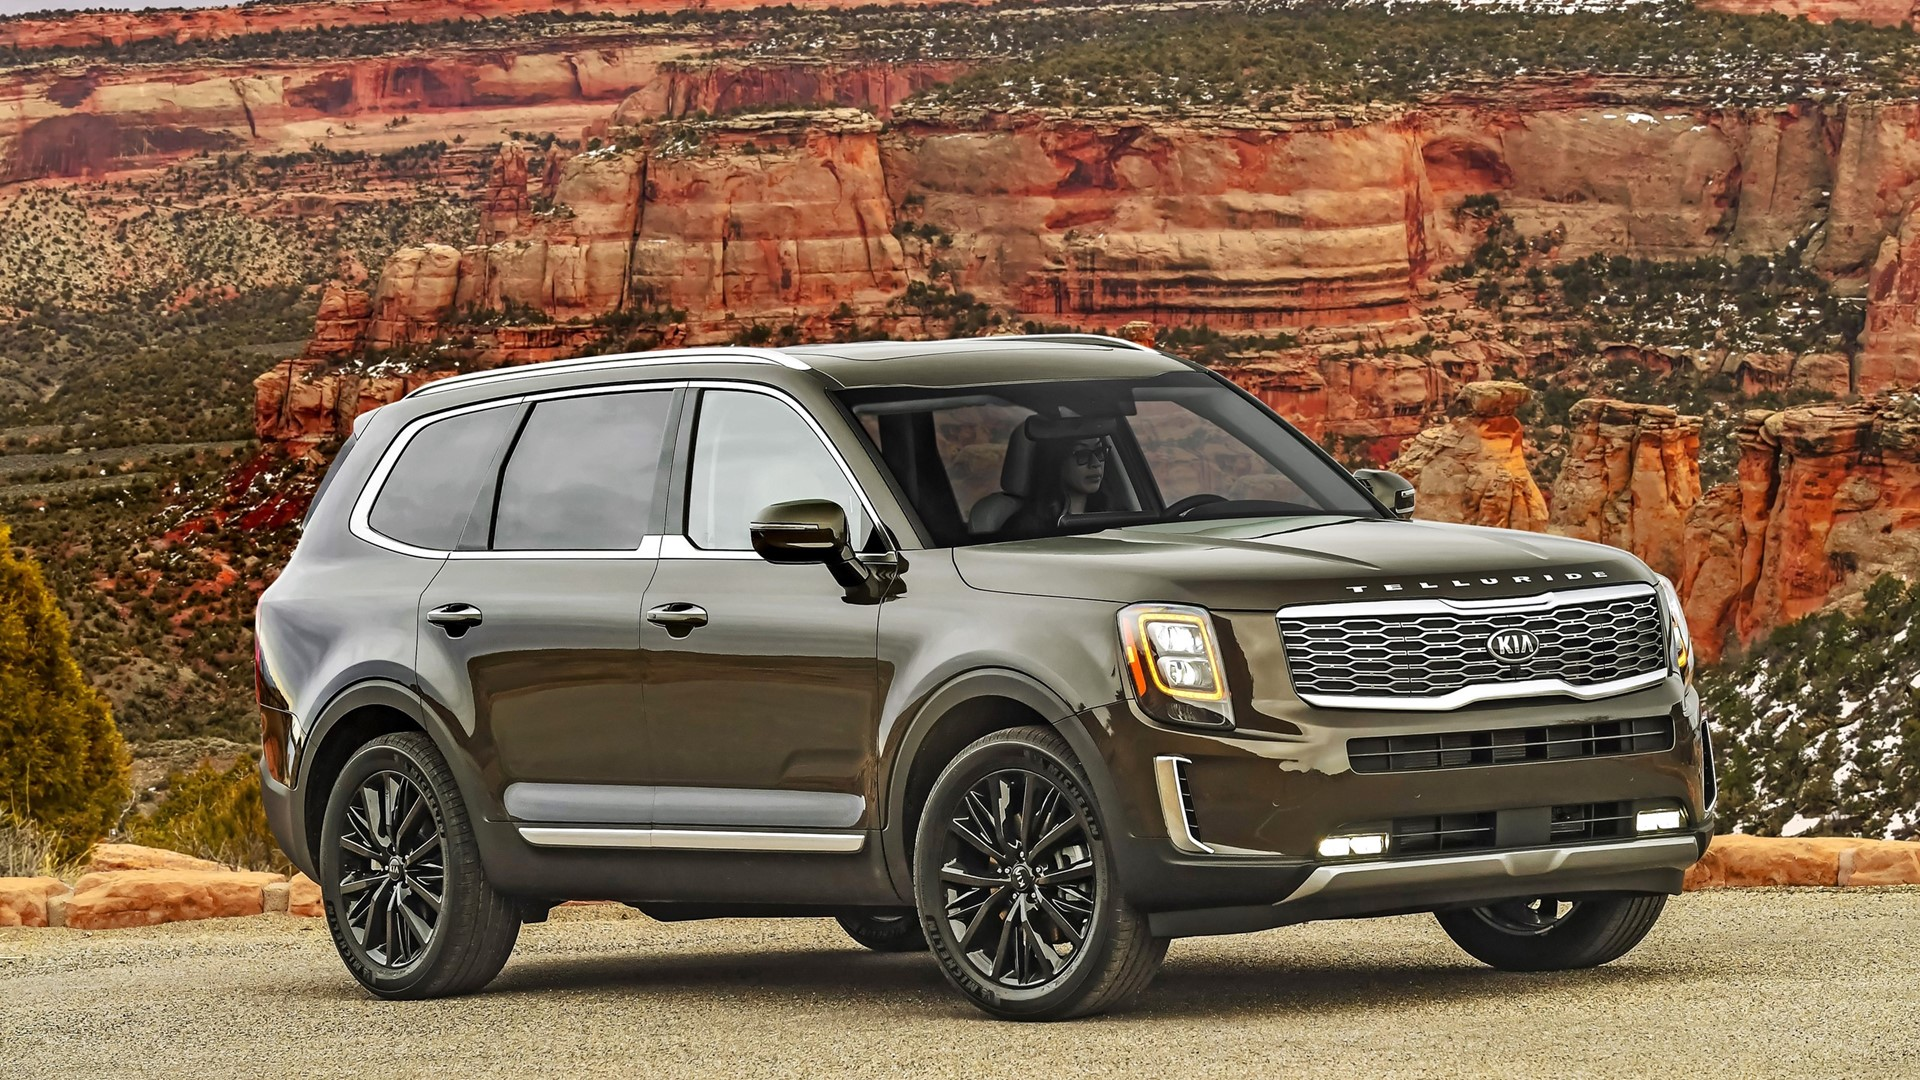 #KiaTelluride named winner among Automobile All-Stars